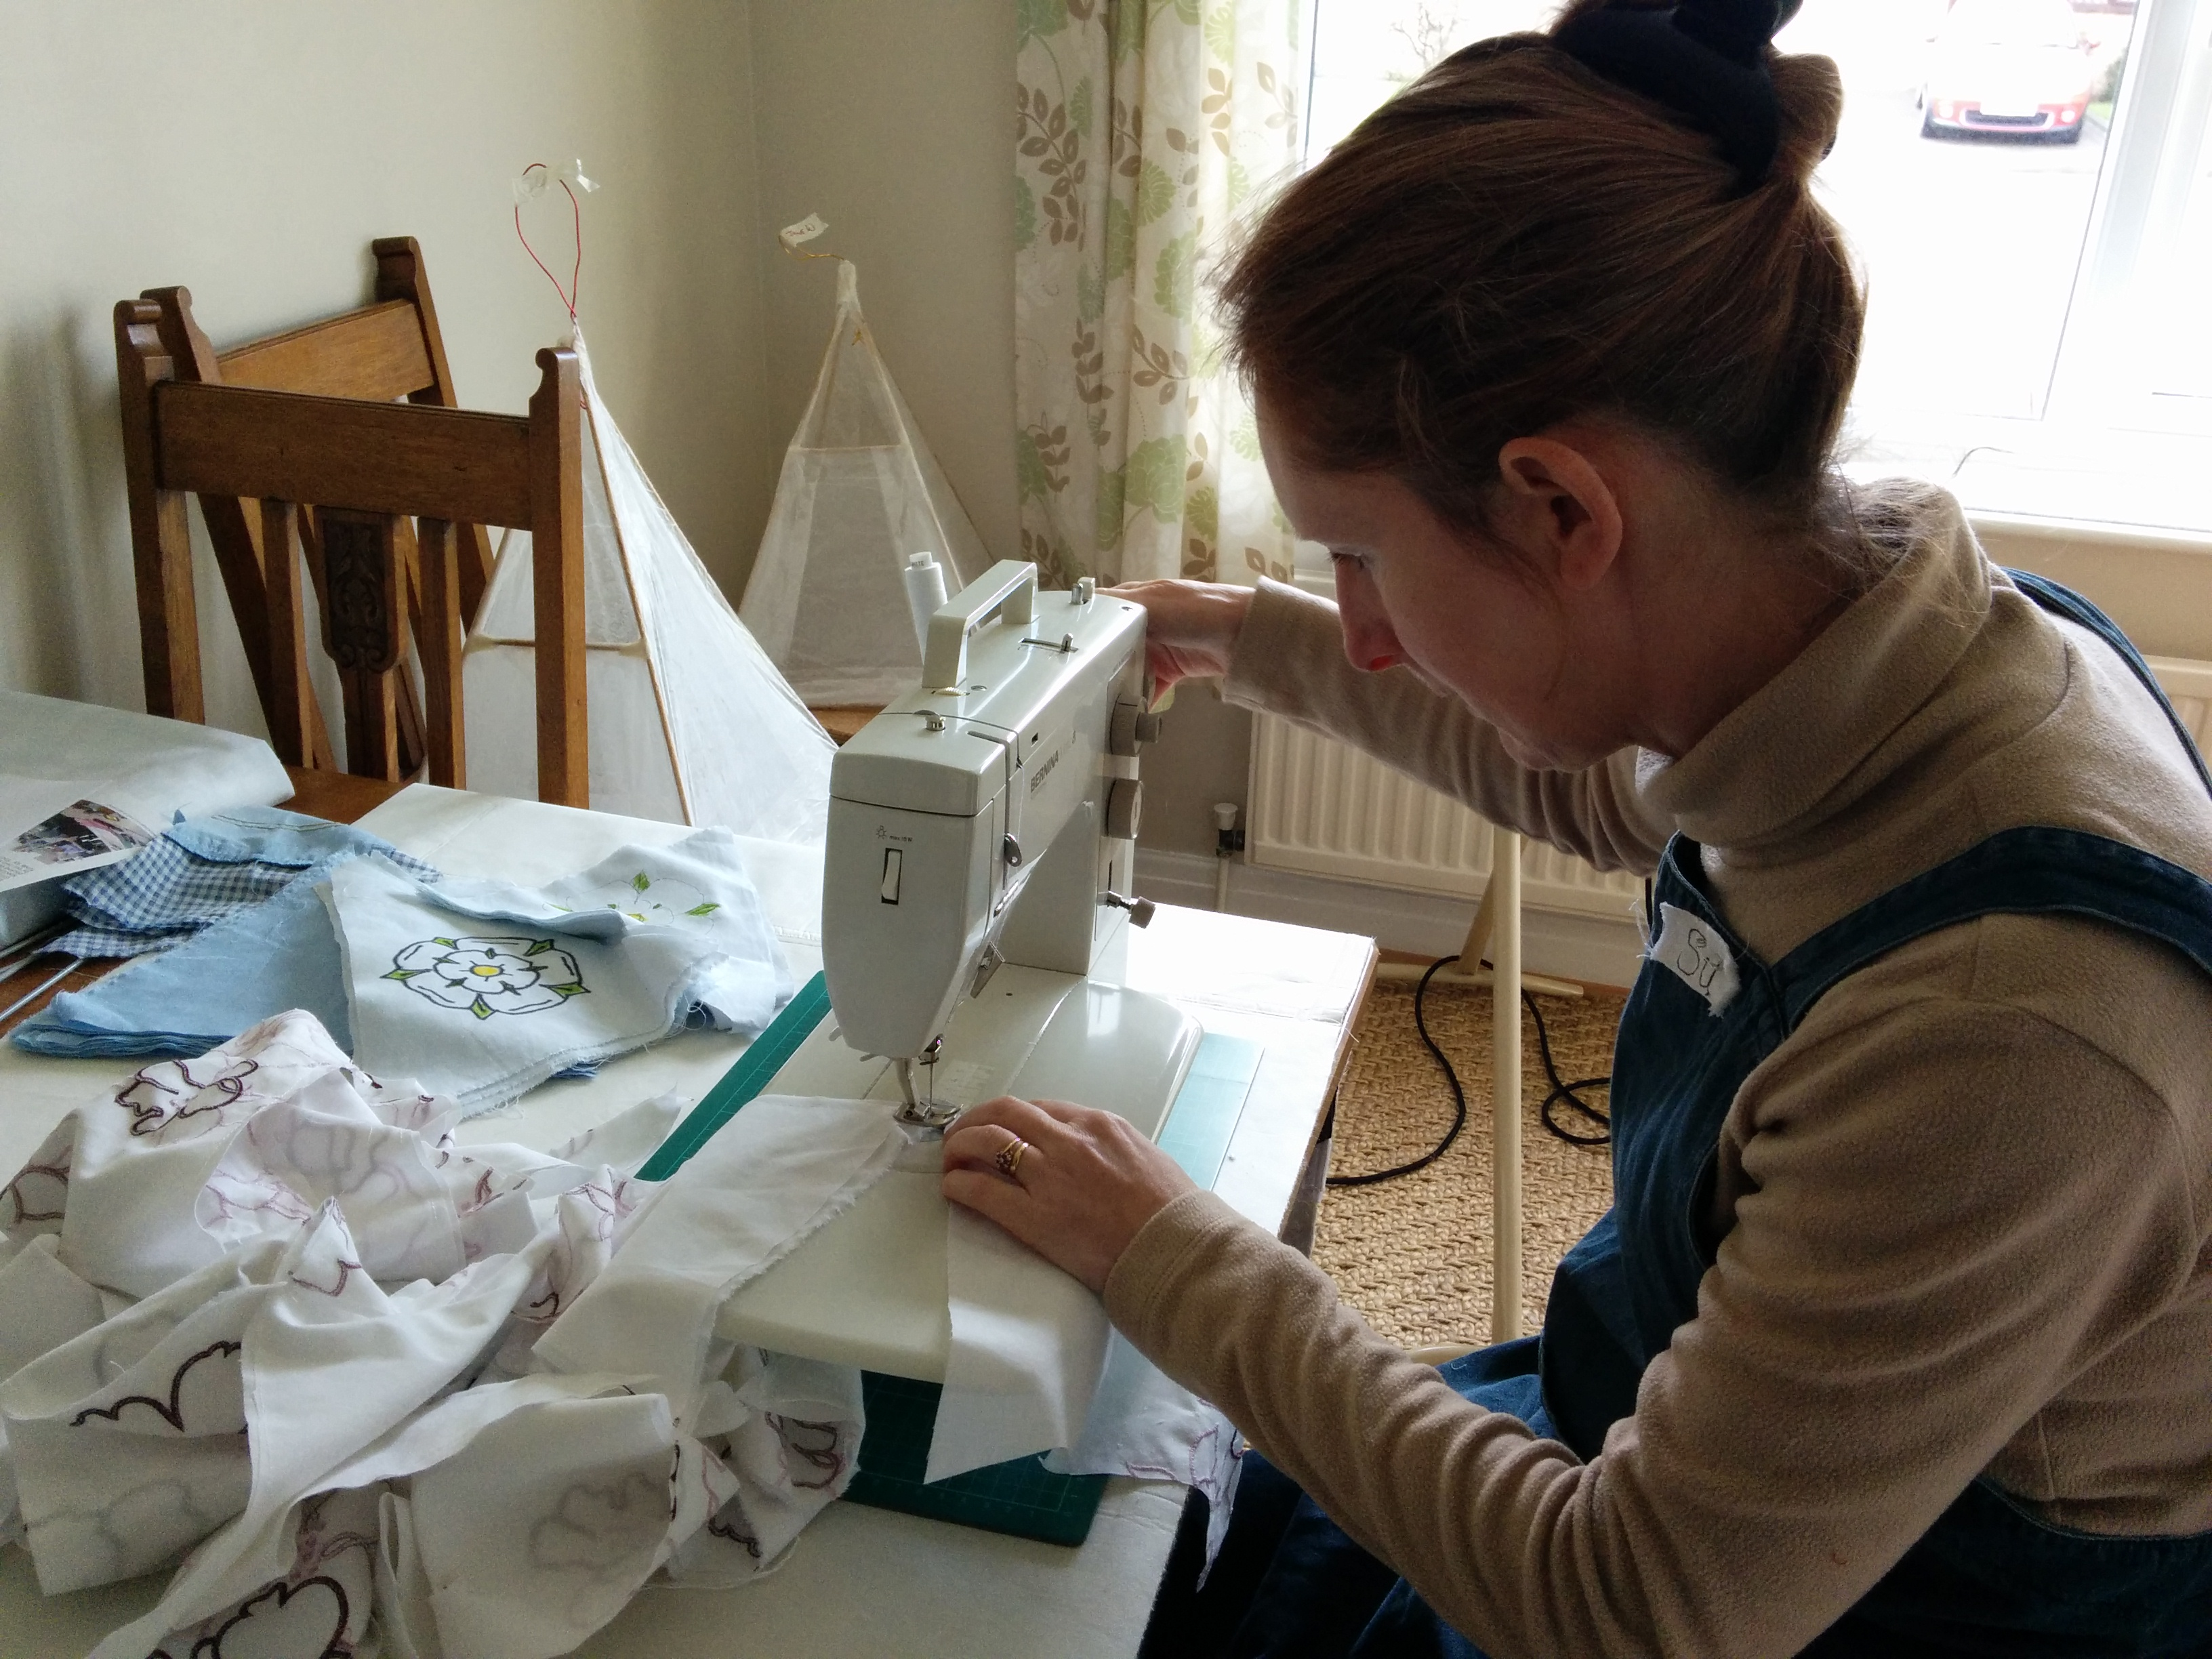 Image of person using a sewing machine